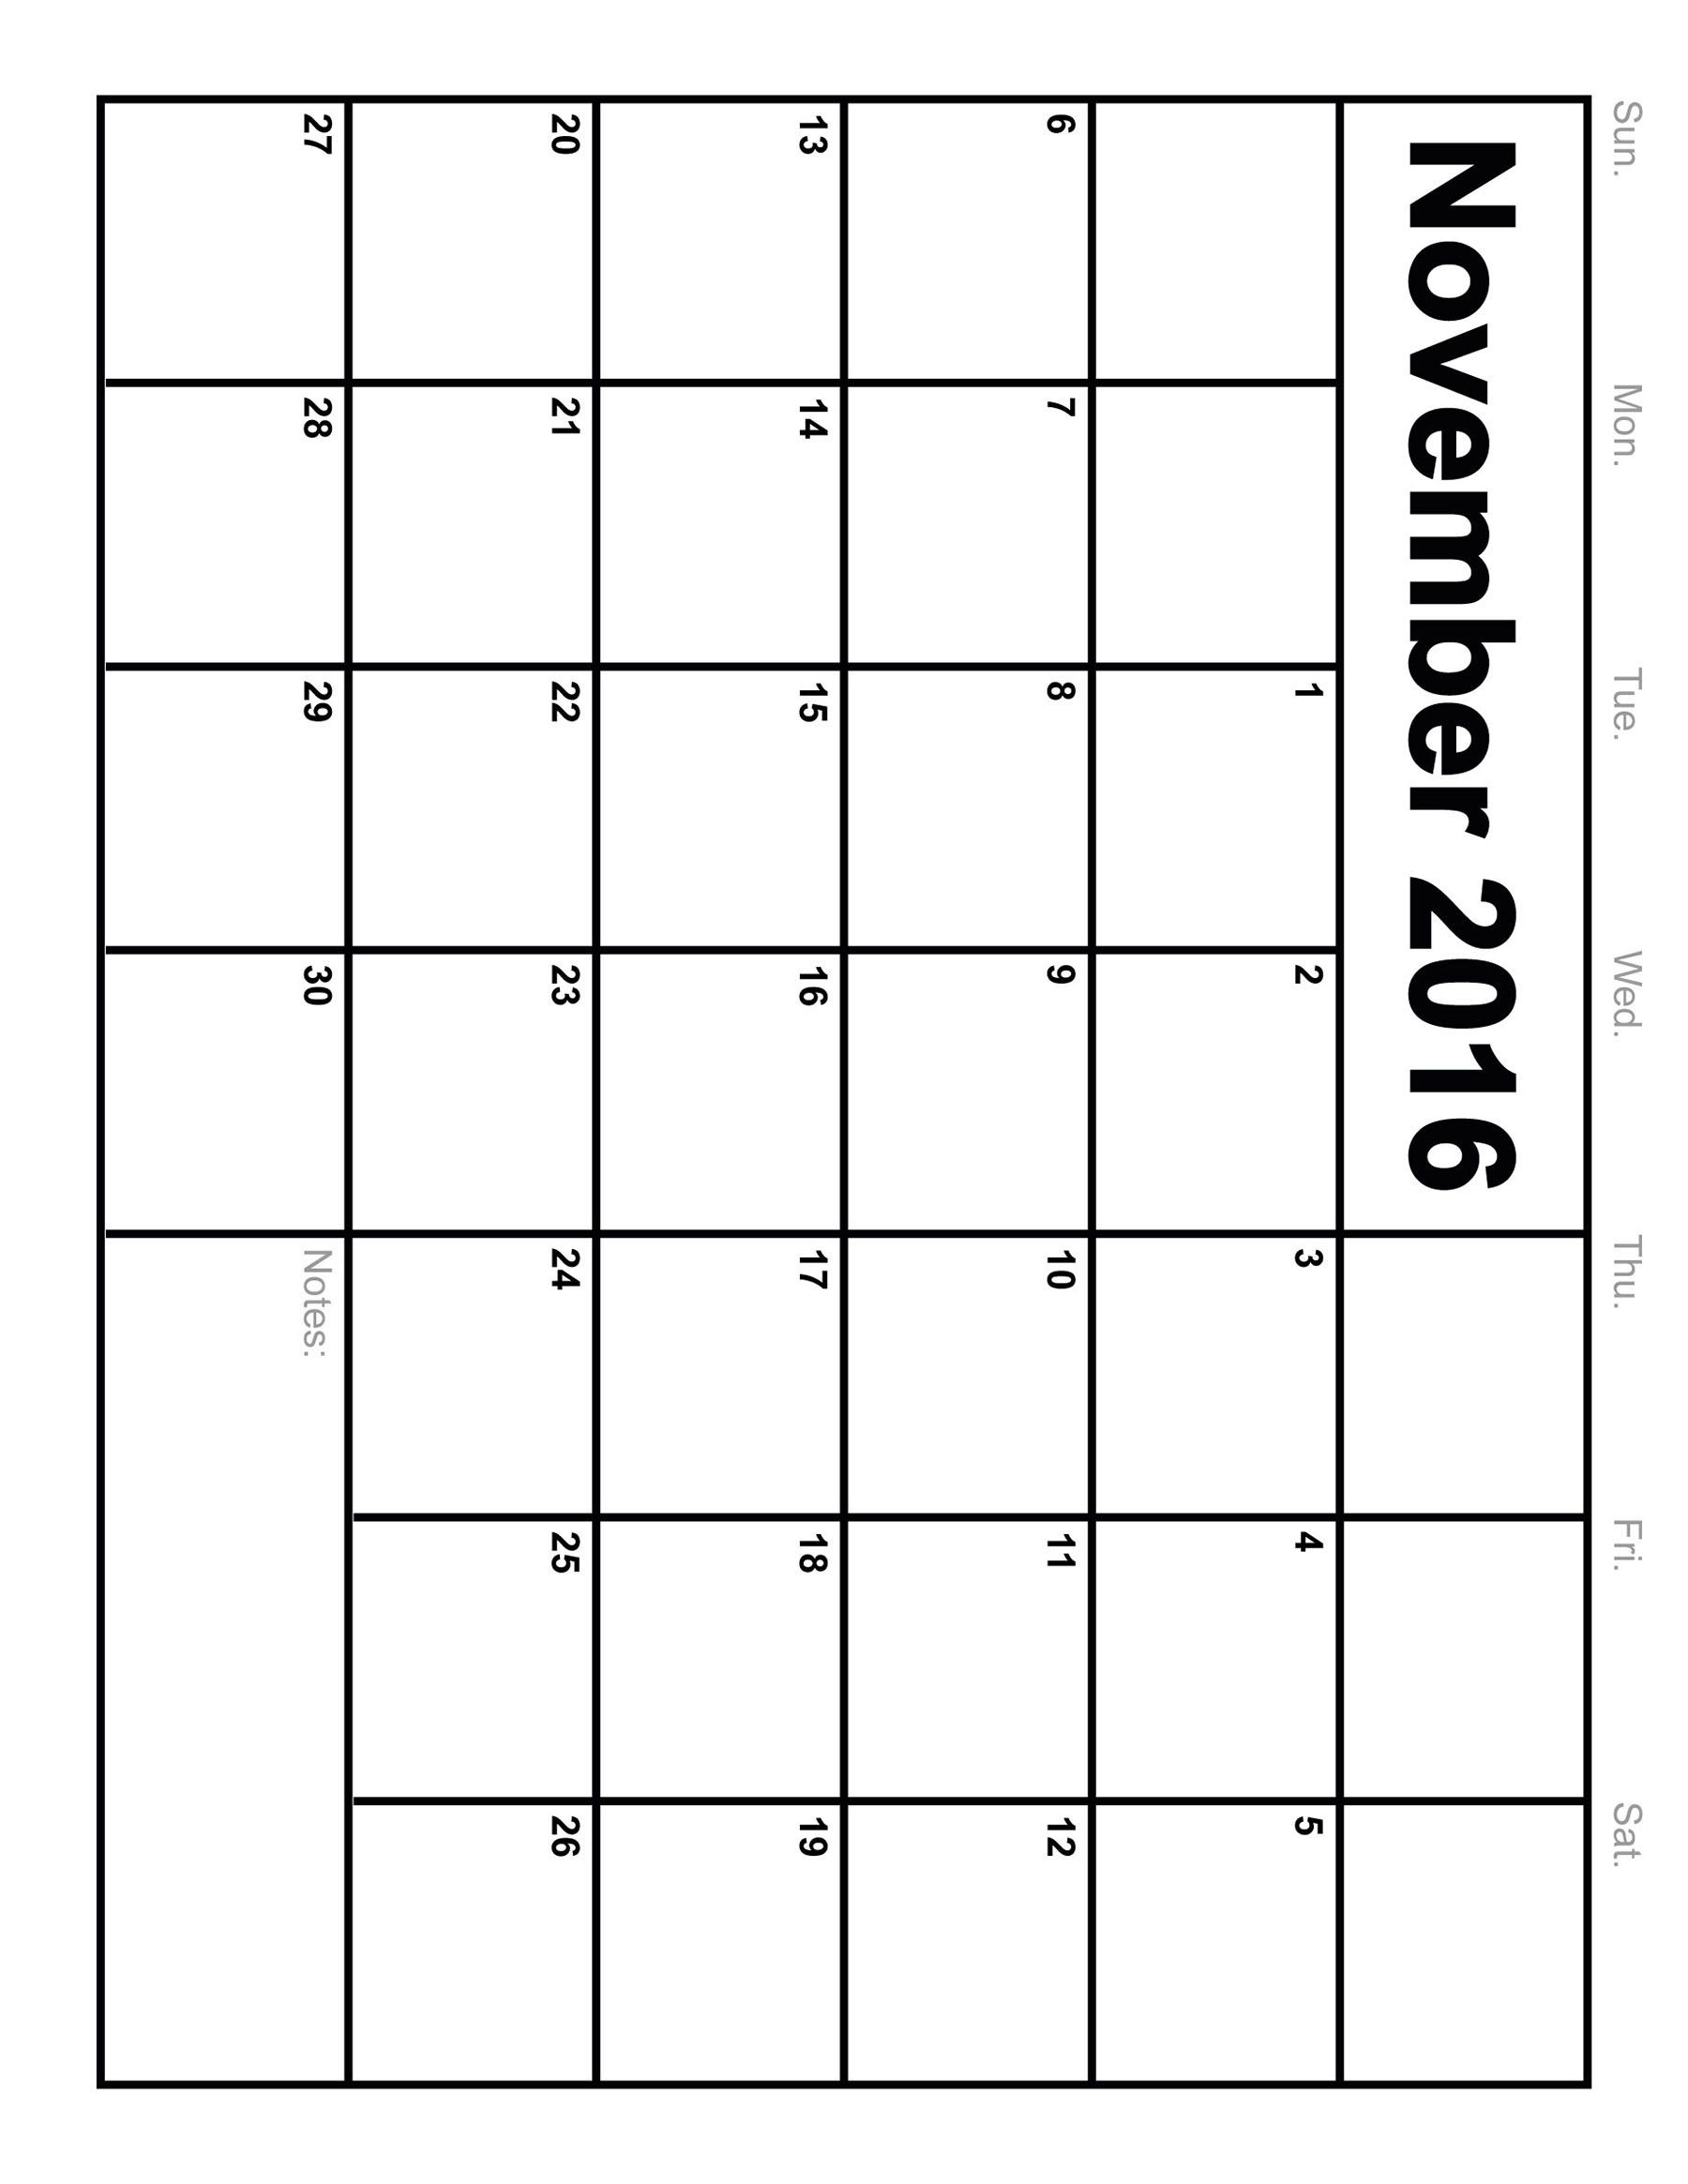 November 2016 Calendar Printable Monthly Blank Calendar 2016 89uj